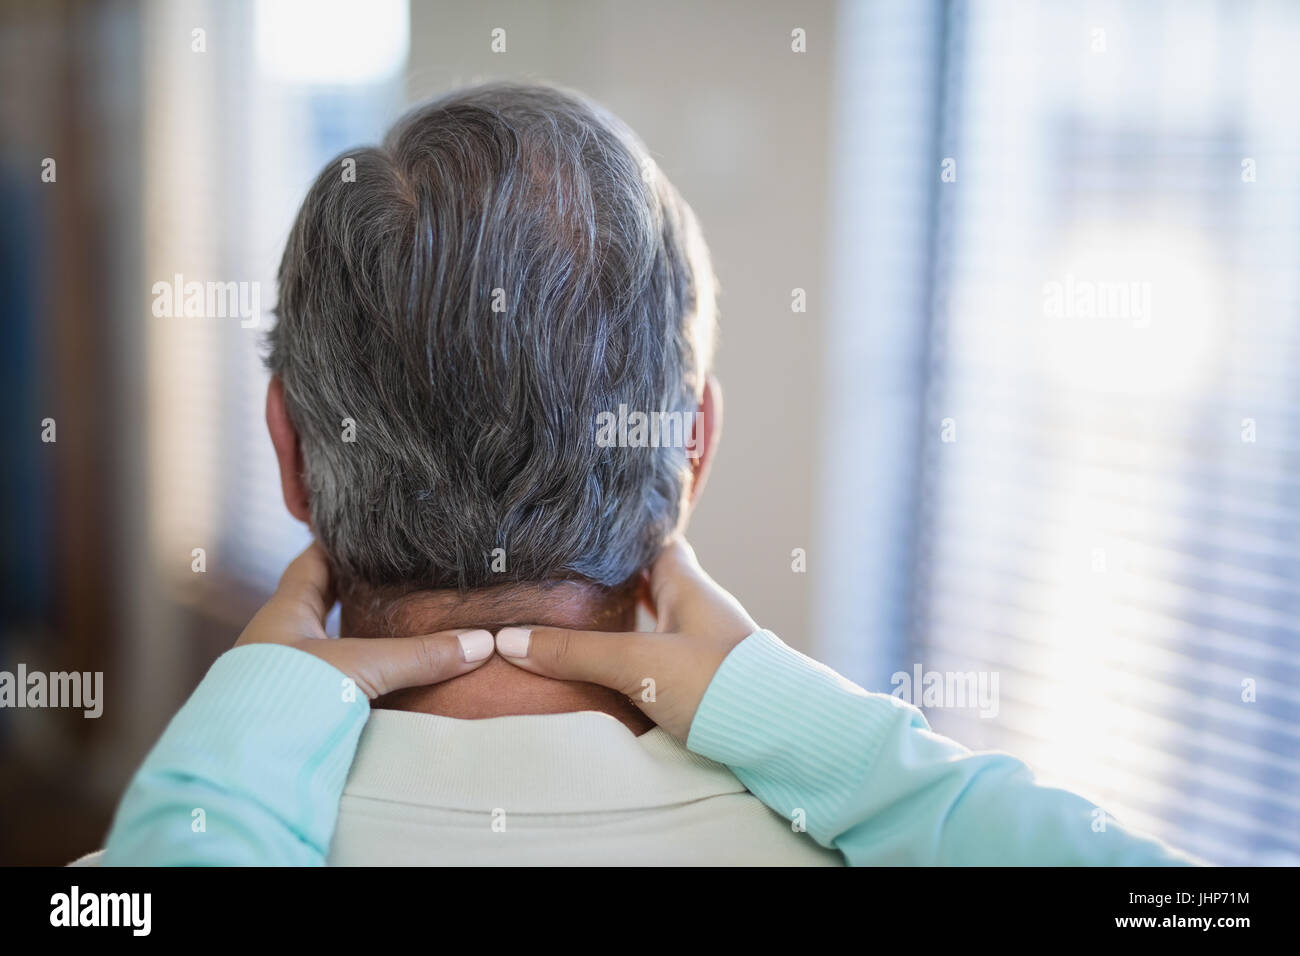 Close-up of female therapist massaging neck to male patient at hospital ward - Stock Image